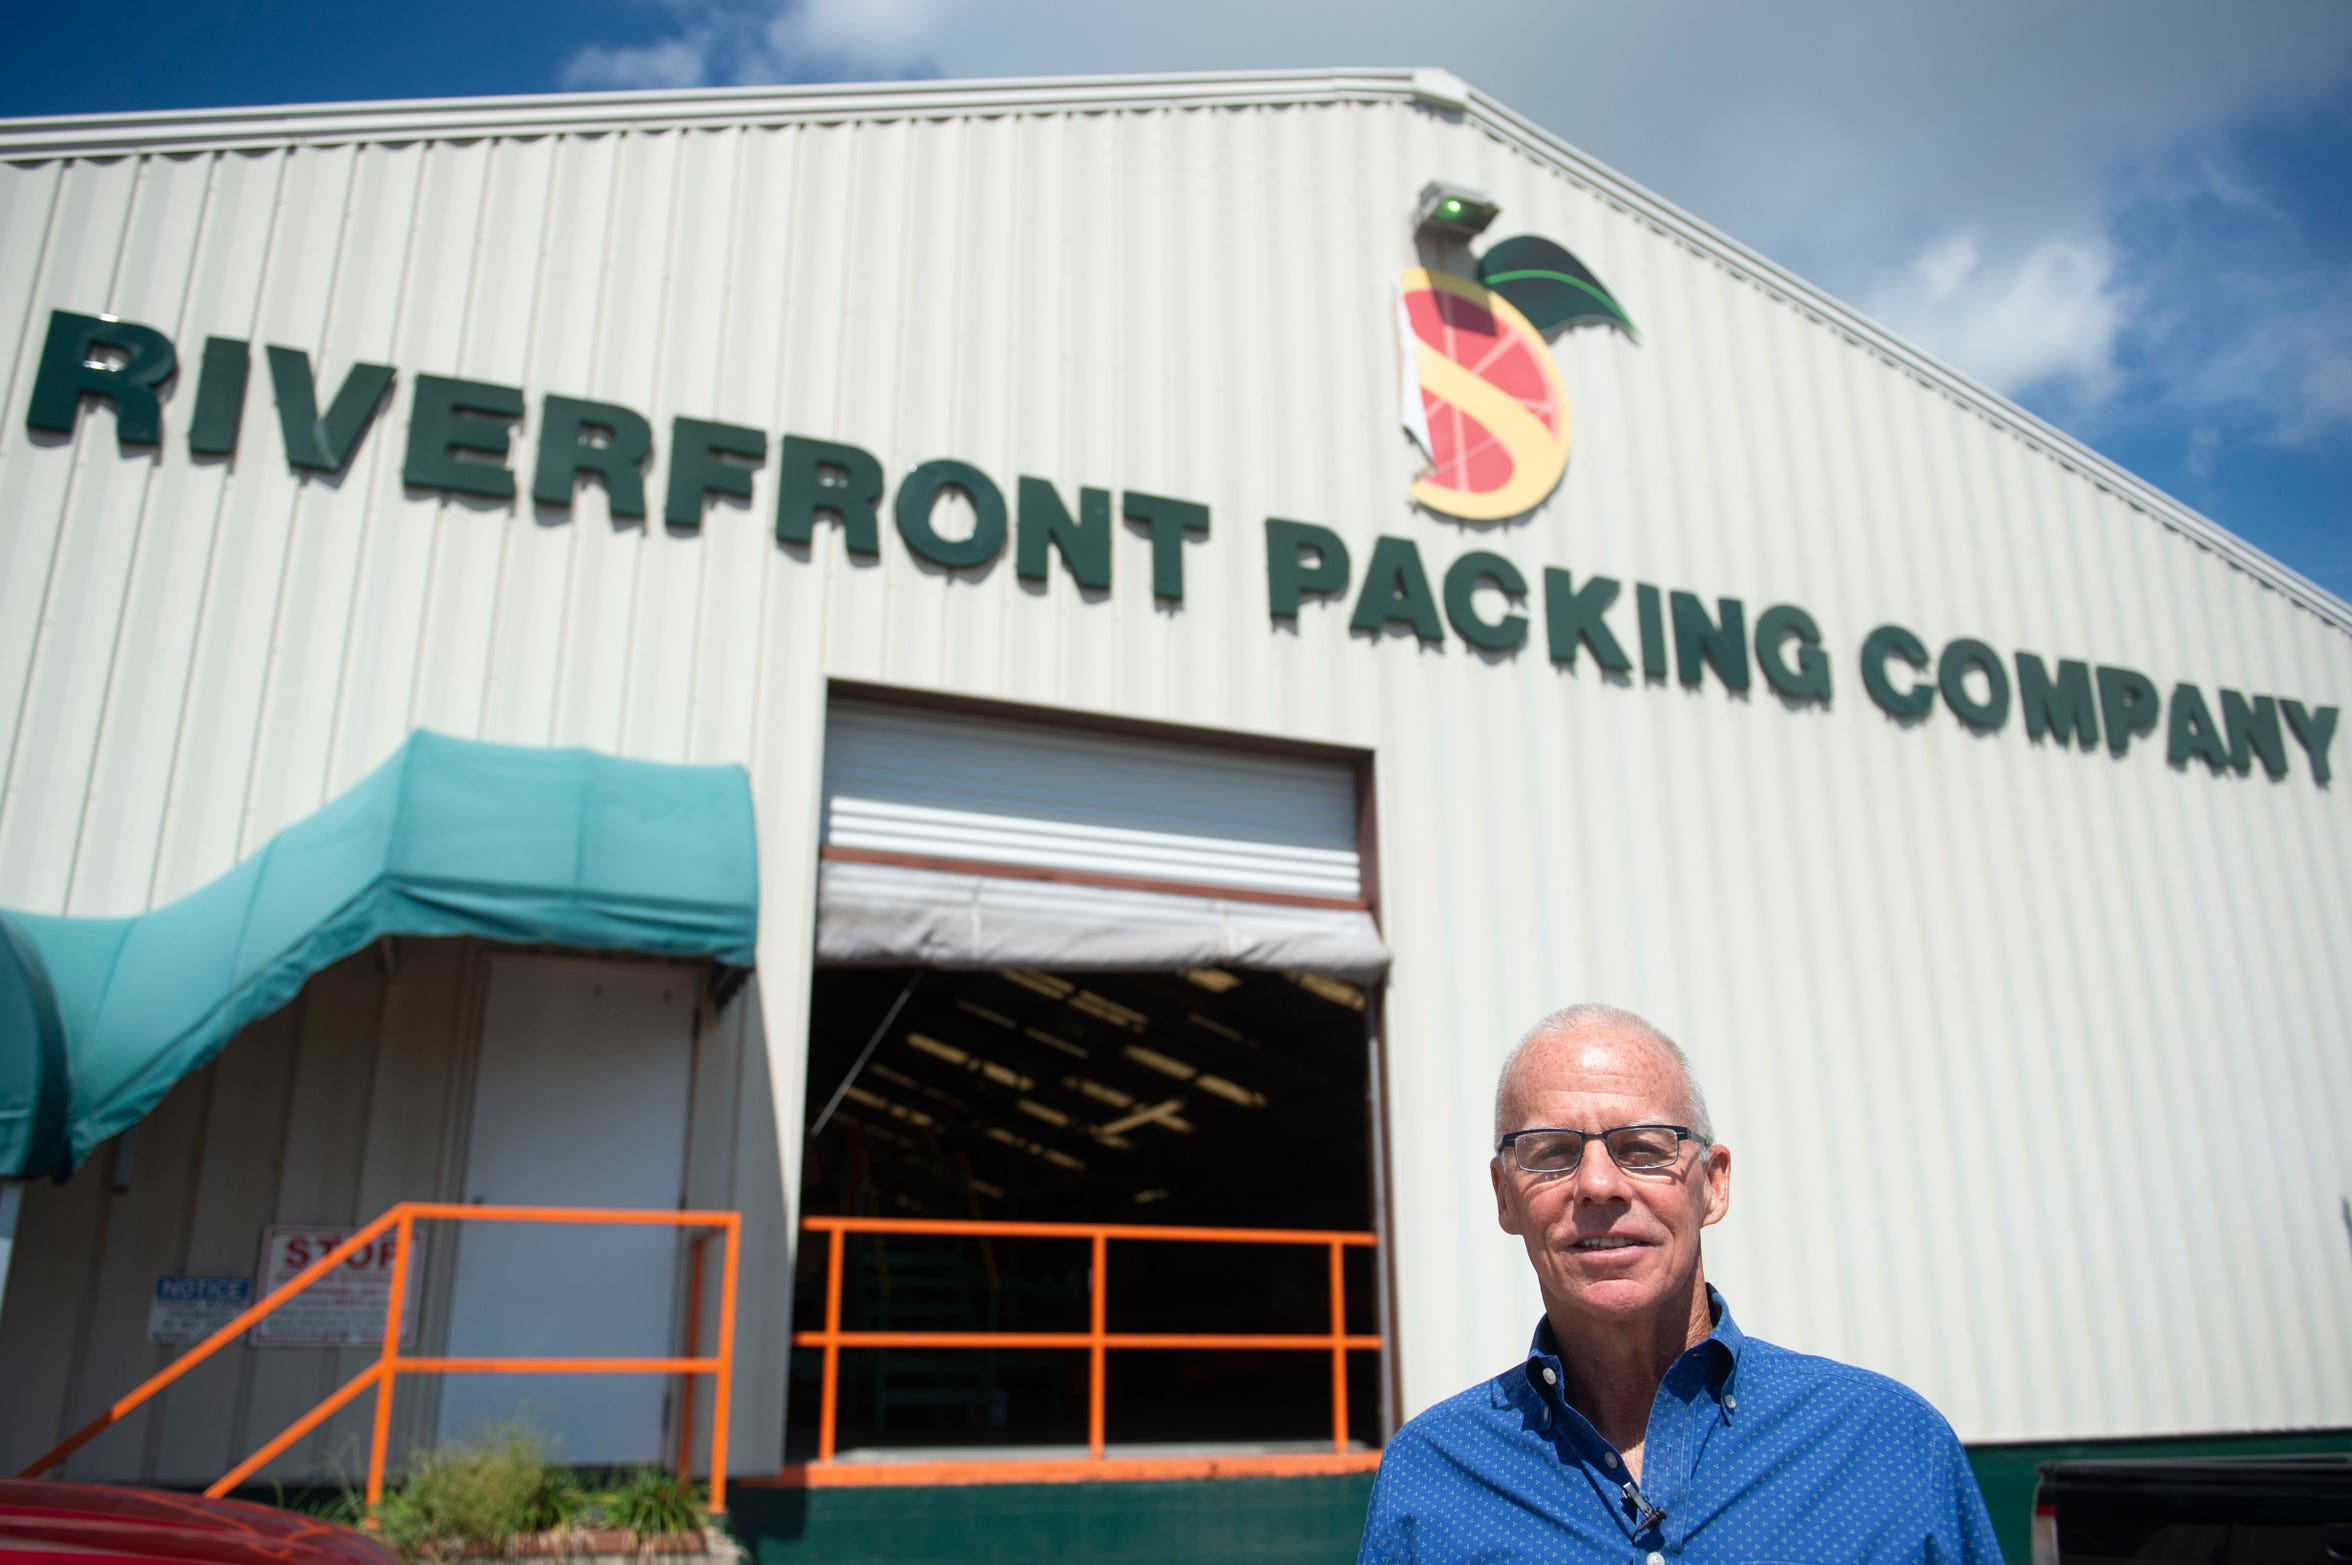 """Some of the issues on Riverfront Packing Company president and CEO Dan Richey's mind this election year are growth management, trade policy, labor and agriculture. Richey is paying extra attention to changes with the North America Free Trade Agreement. """"The new negotiations that we're going through with NAFTA are going to potentially change the landscape of Florida,"""" Richey said."""